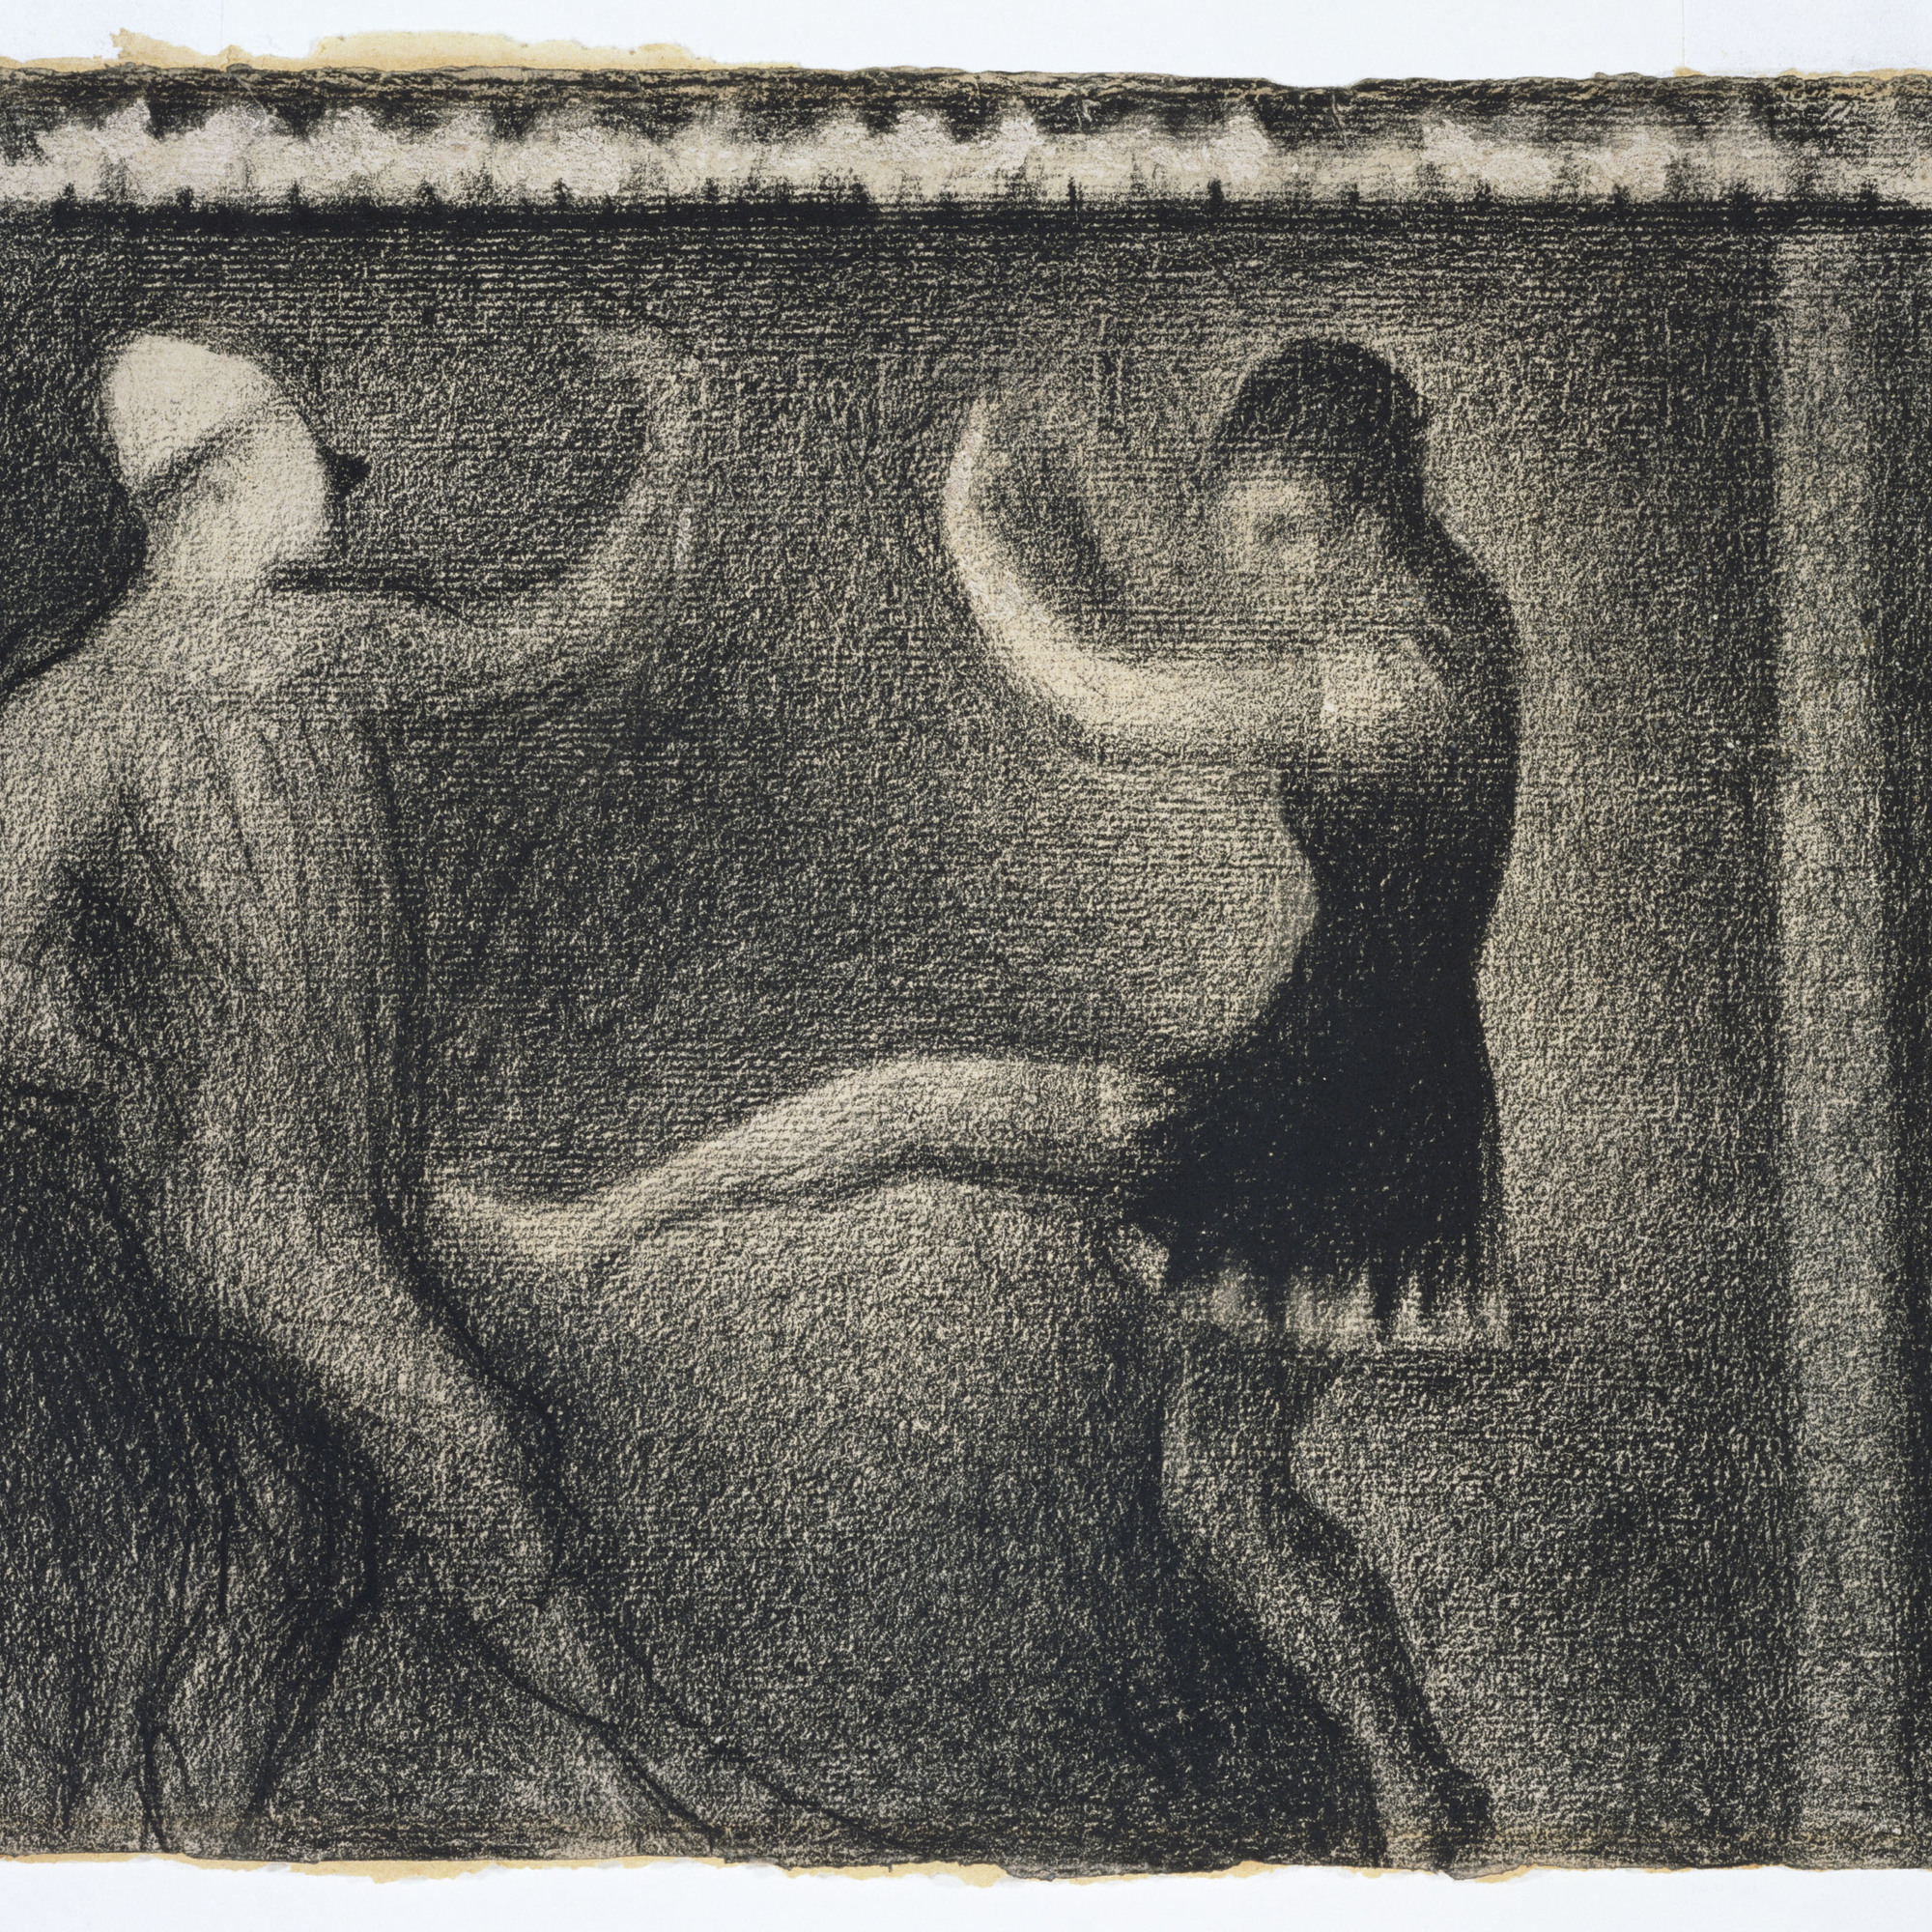 Georges Seurat. Pierrot and Colombine. c. 1887–88. Conté crayon on paper, 9 3/4 × 12 5/16″ (24.8 × 31.2 cm). The Kasama Nichido Museum of Art